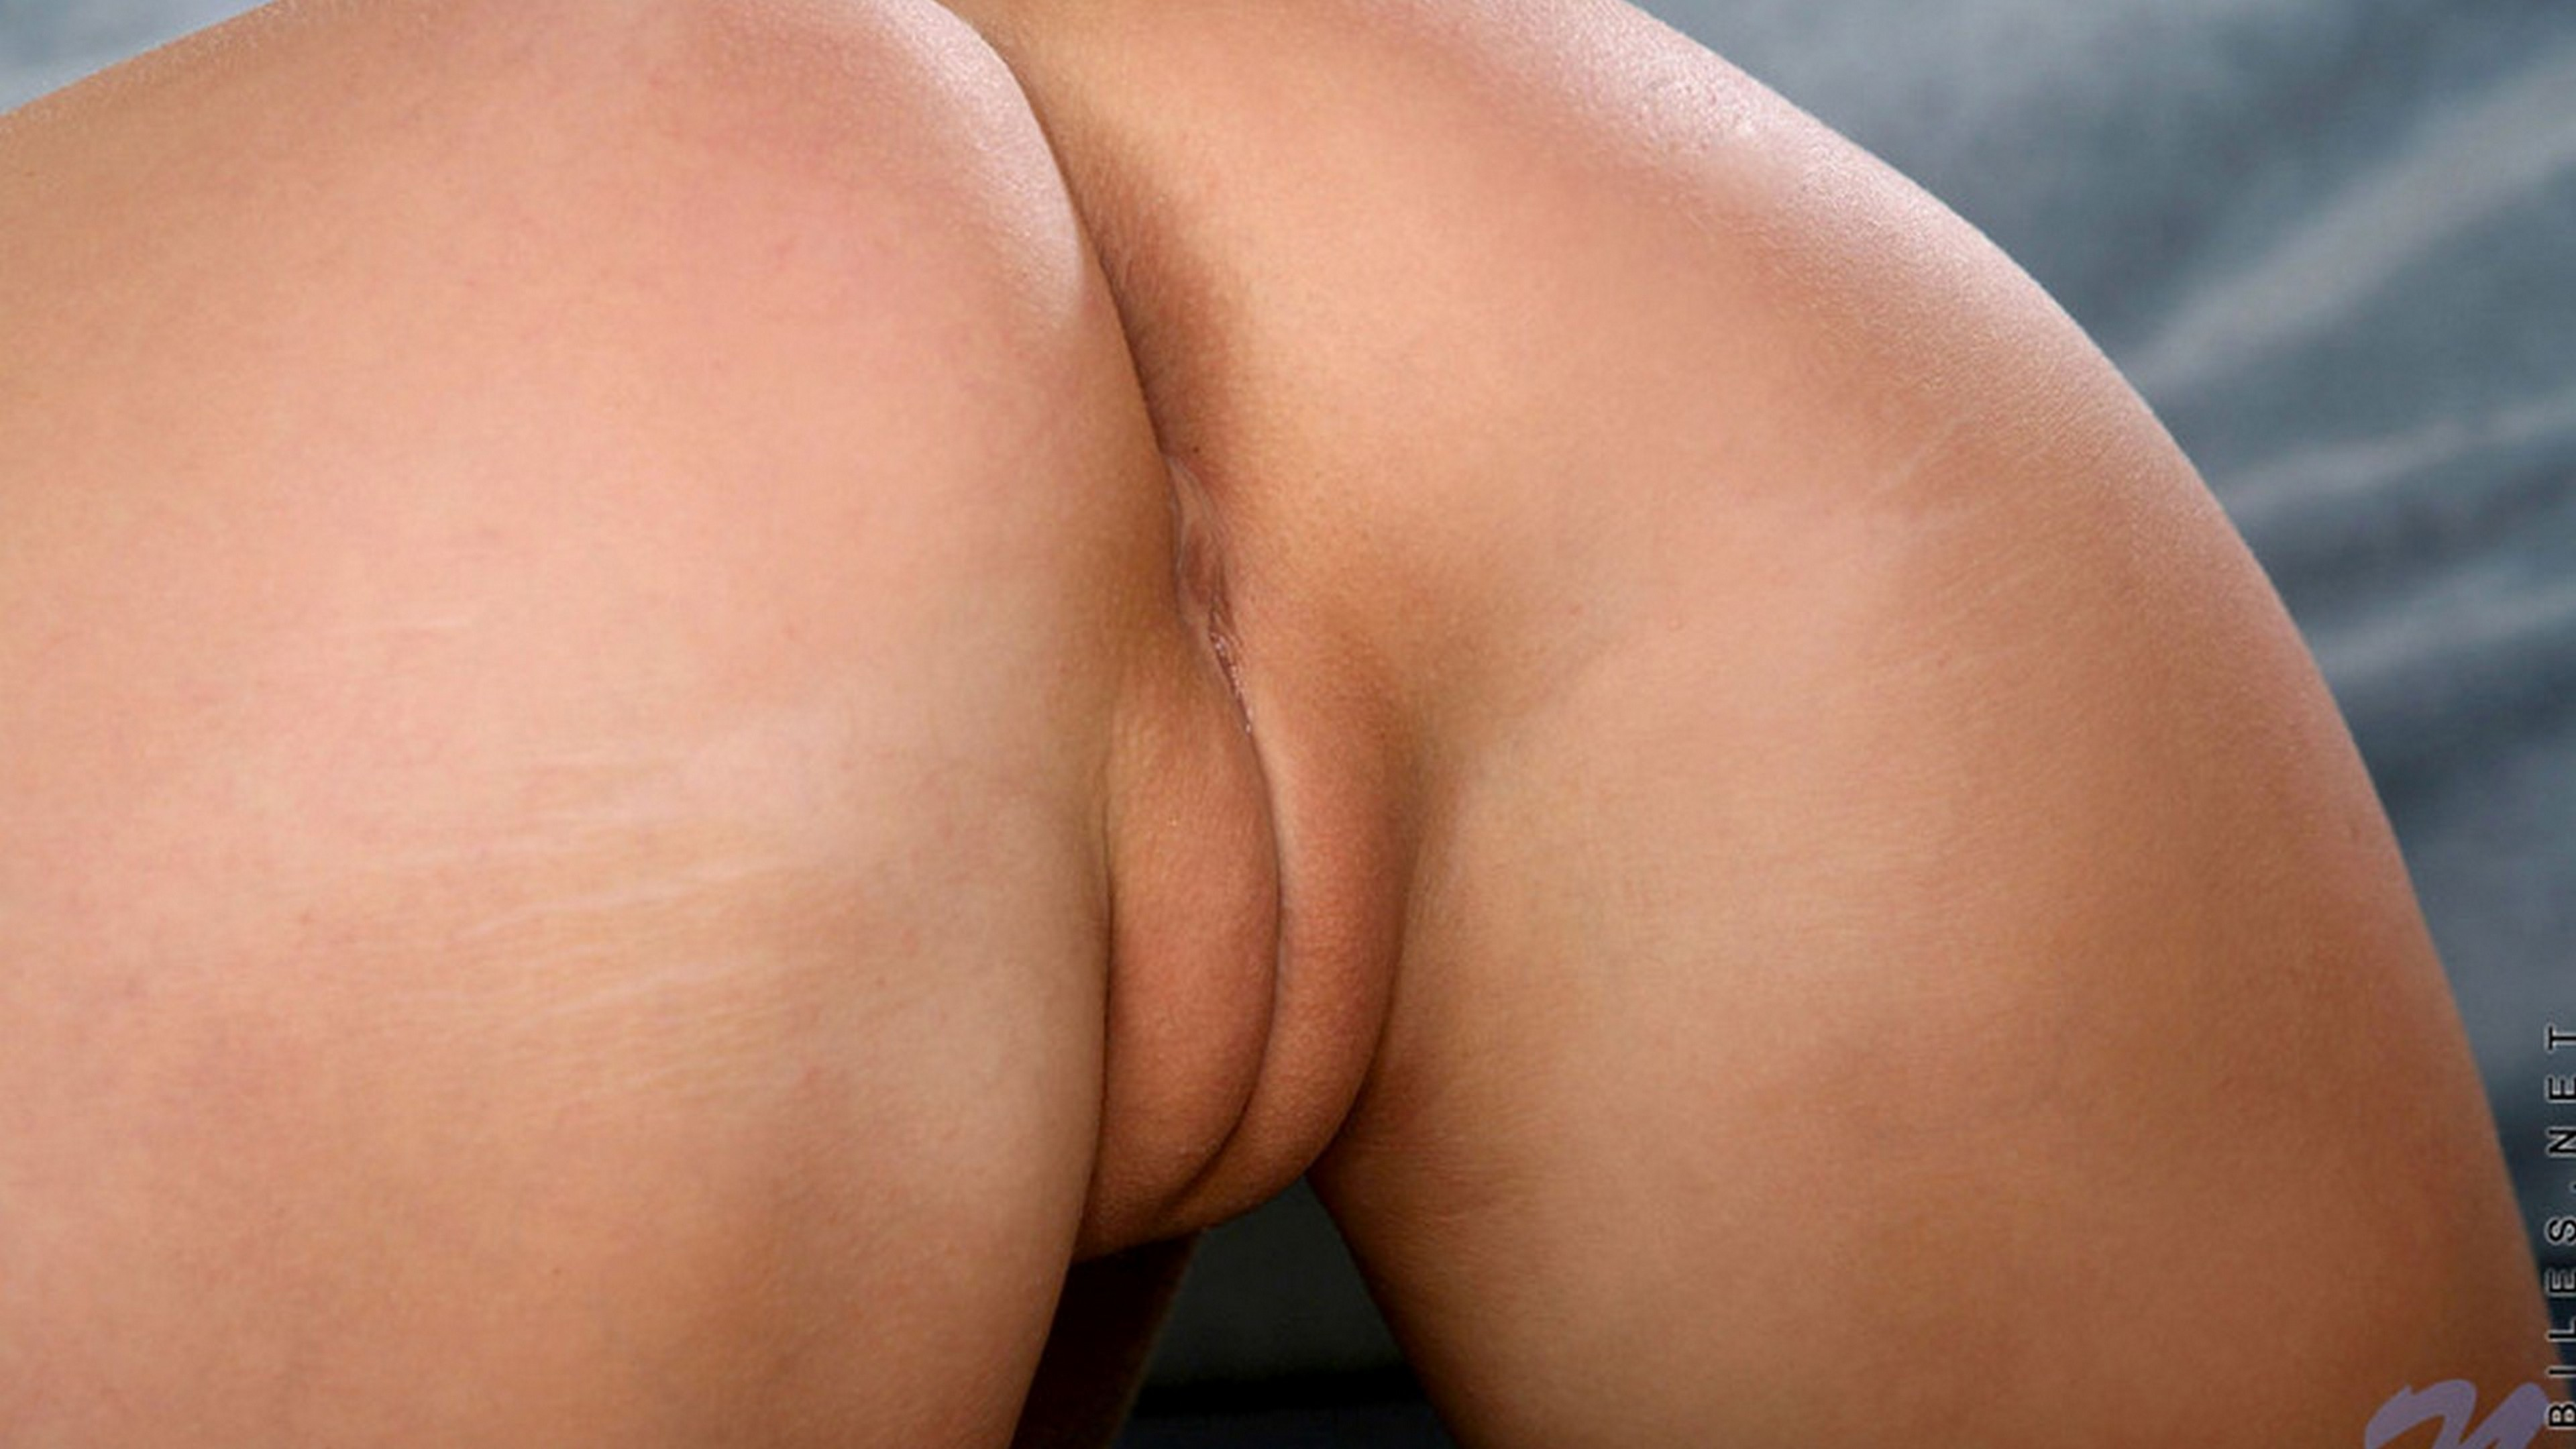 download photo 3840x2160, pussy, nude, xxx, unknown, ass, labia